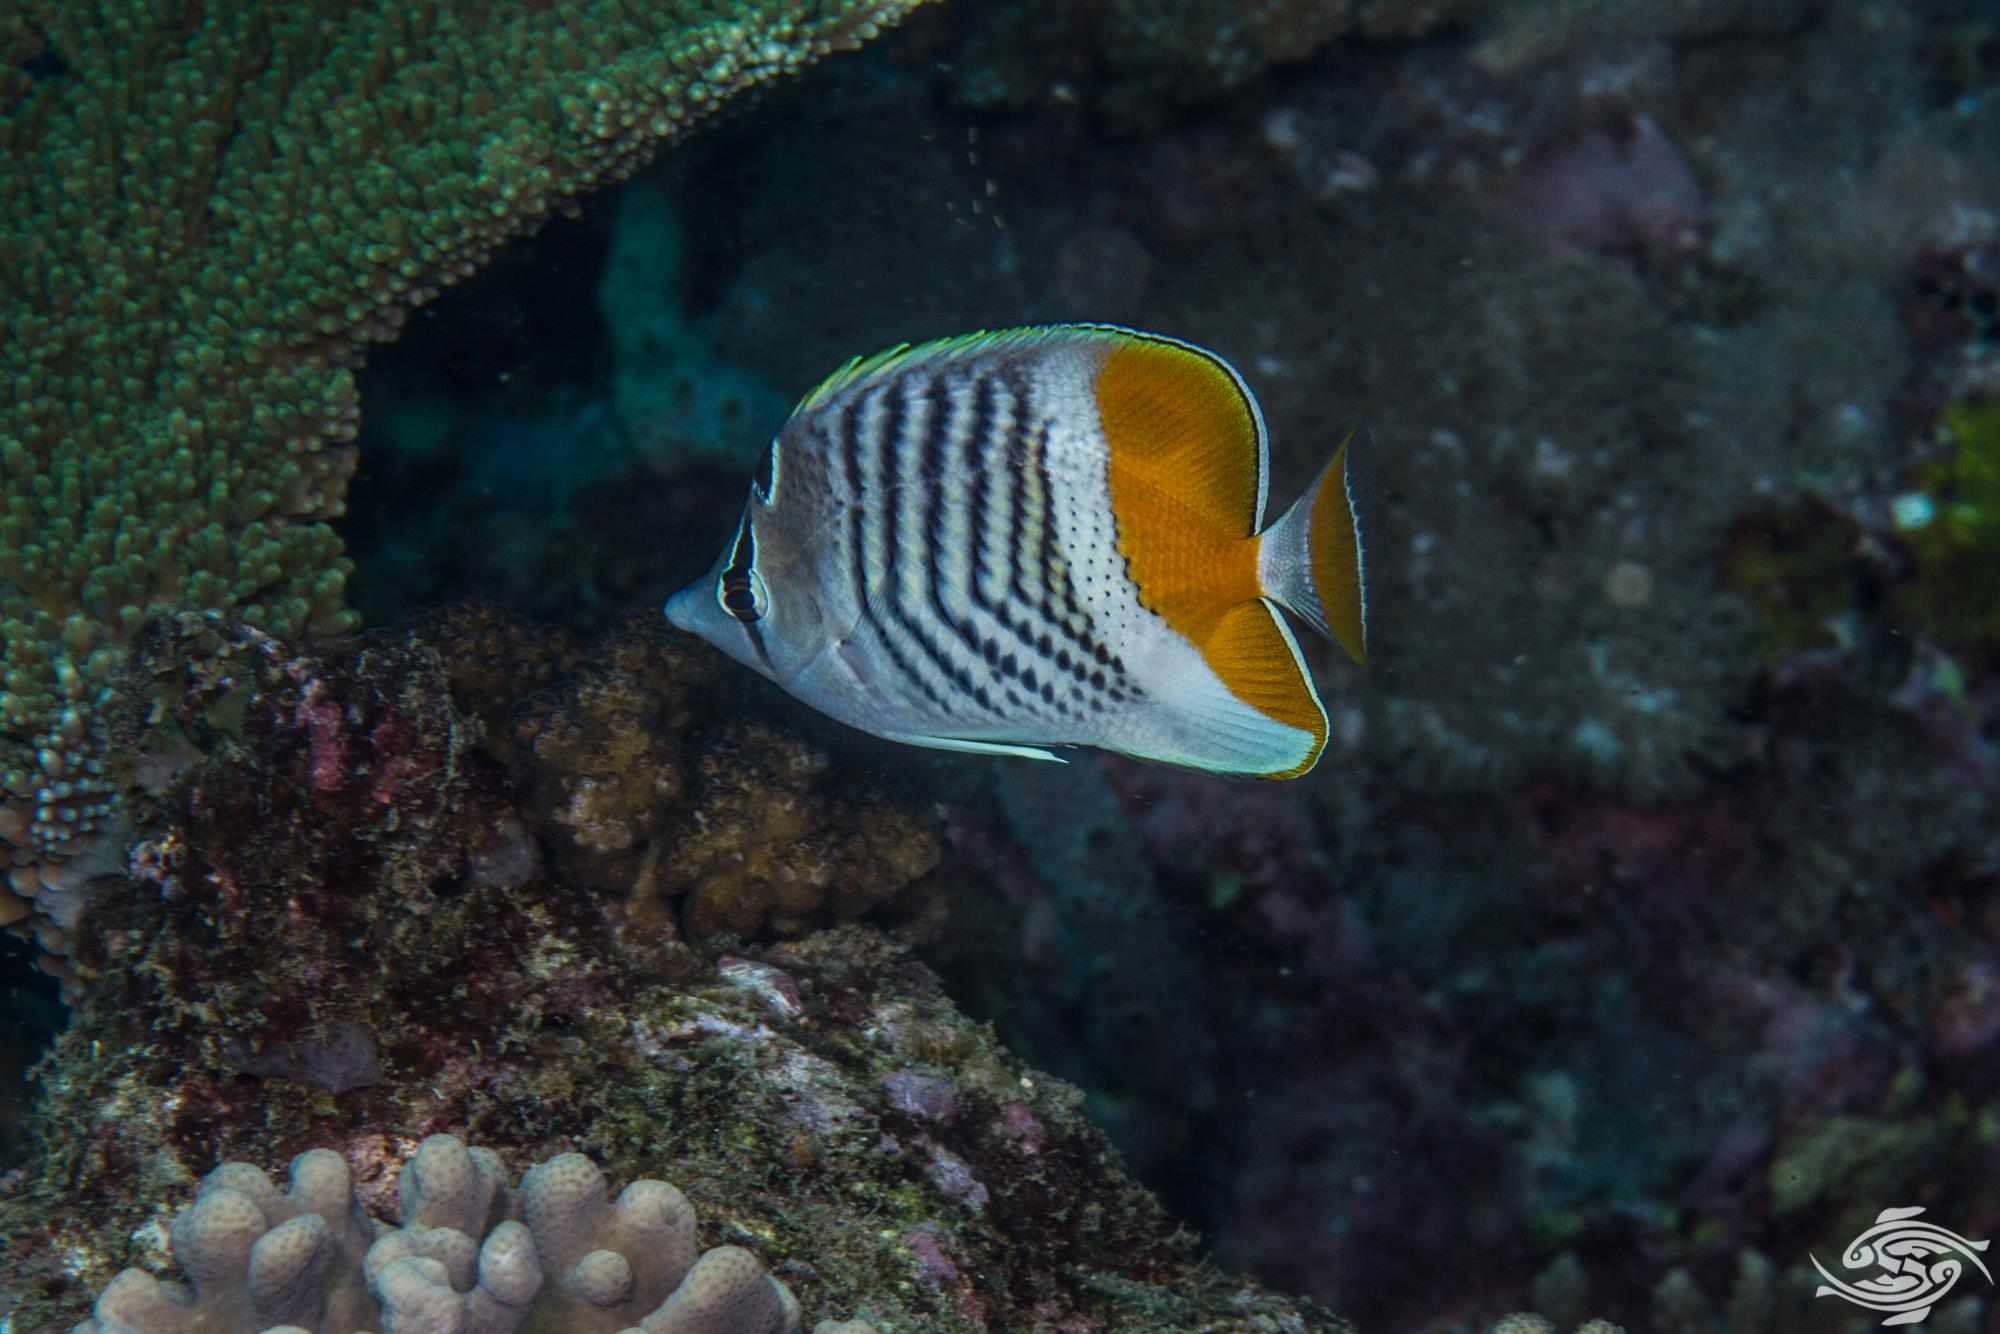 Seychelles butterflyfish (Chaetodon madagaskariensis) is also known as the Pearly Butterflyfish